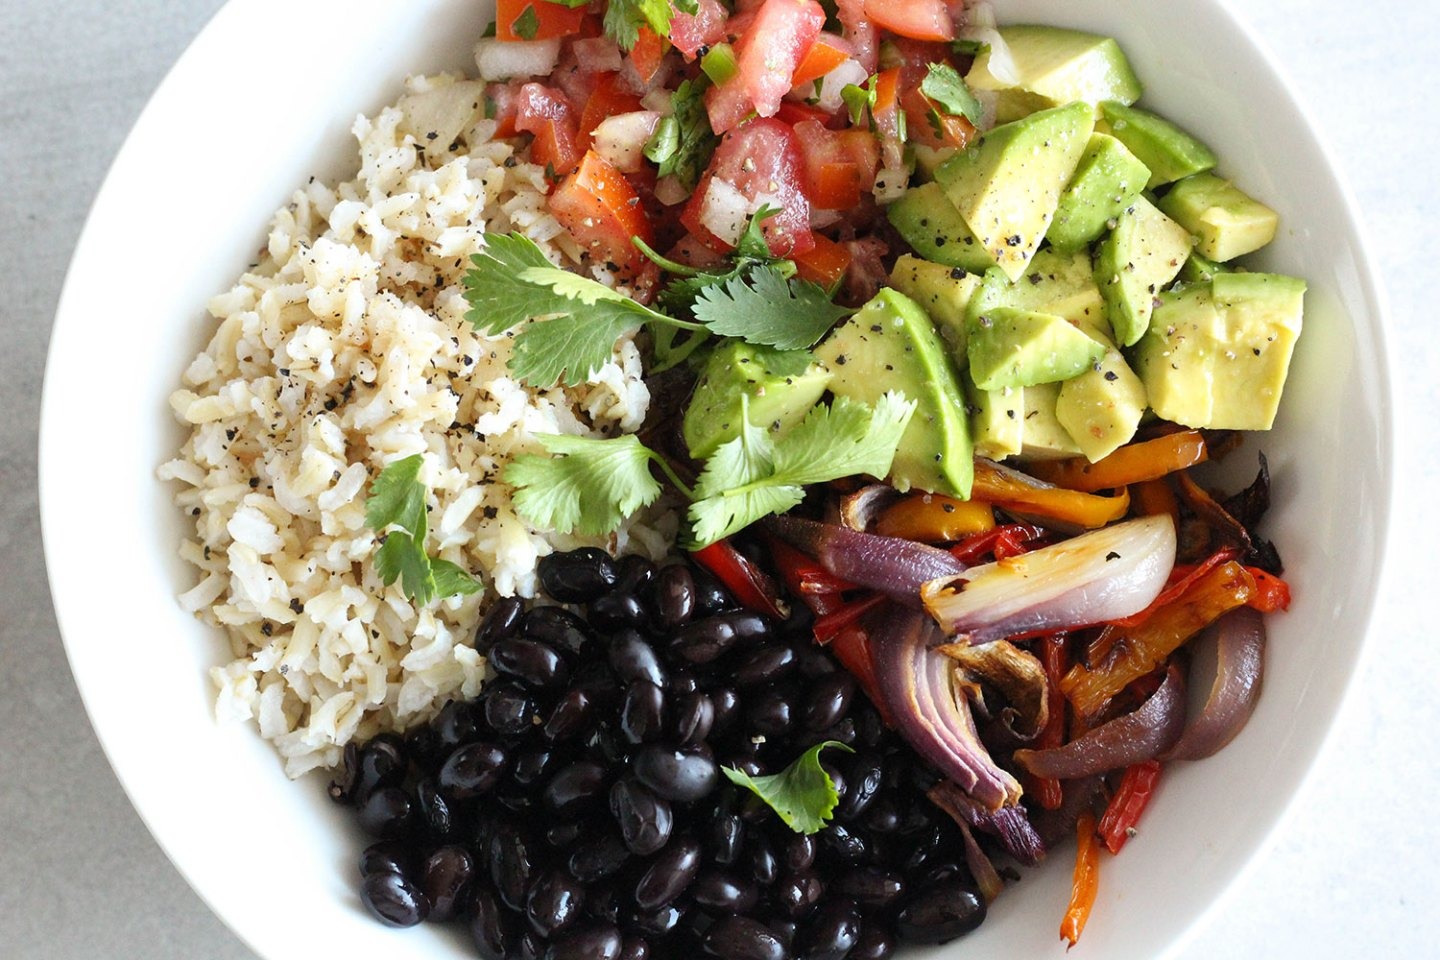 Healthy Chipotle Burrito Bowl Recipe